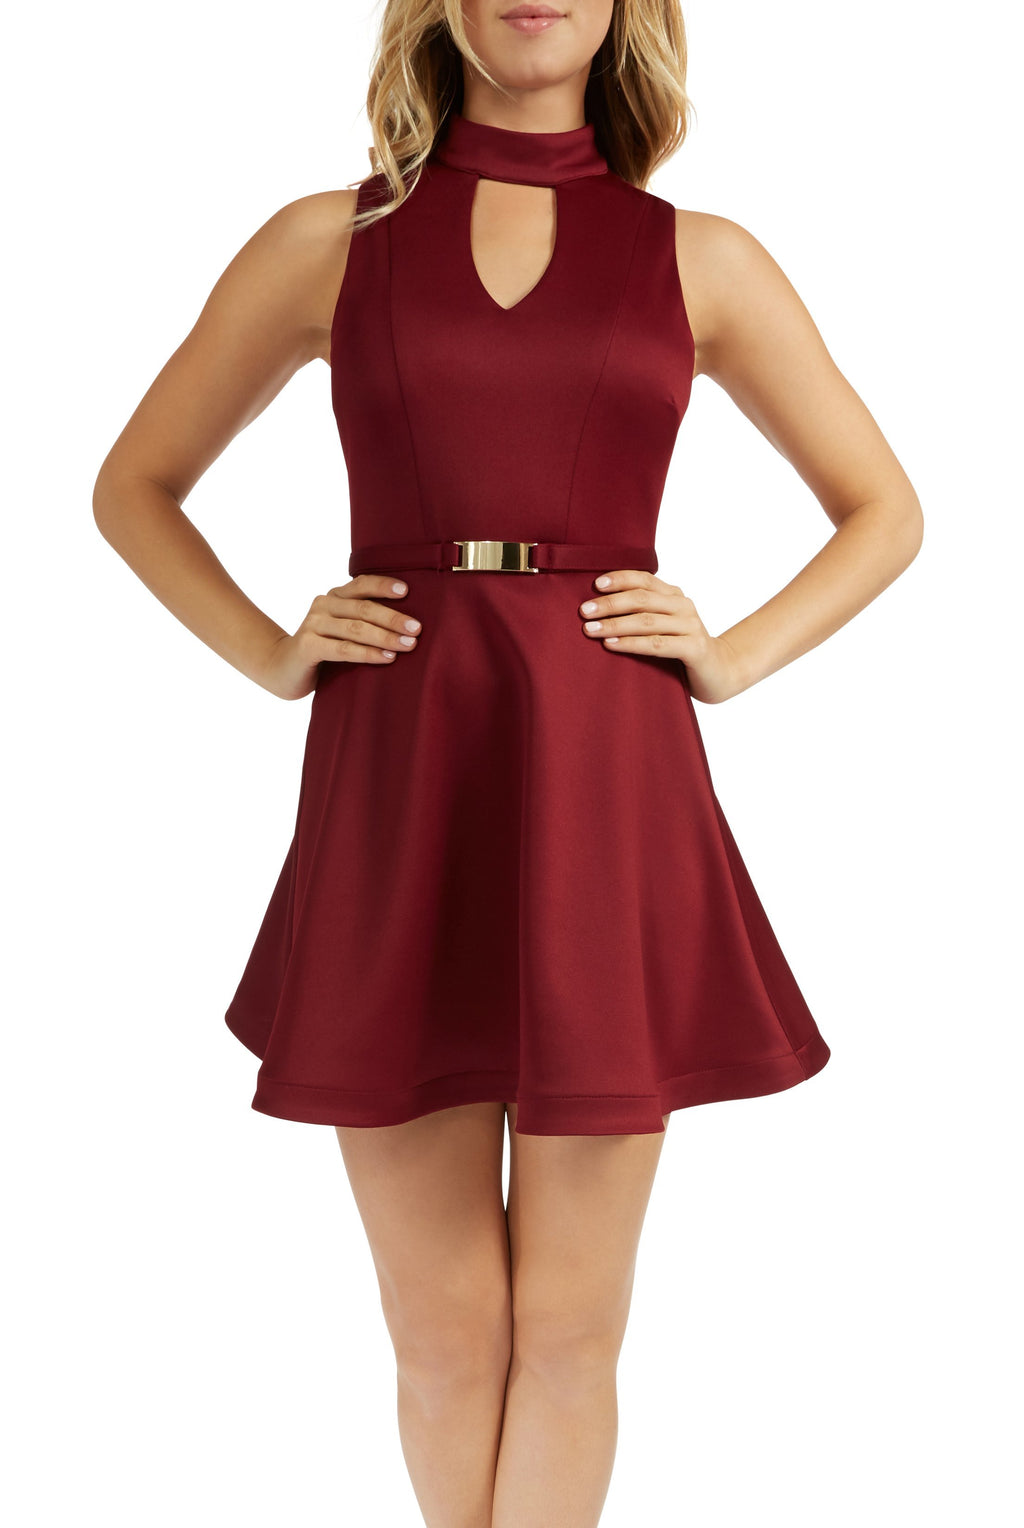 Teeze Me | Sleeveless High Neck Belted Fit and Flare Dress  | Burgundy